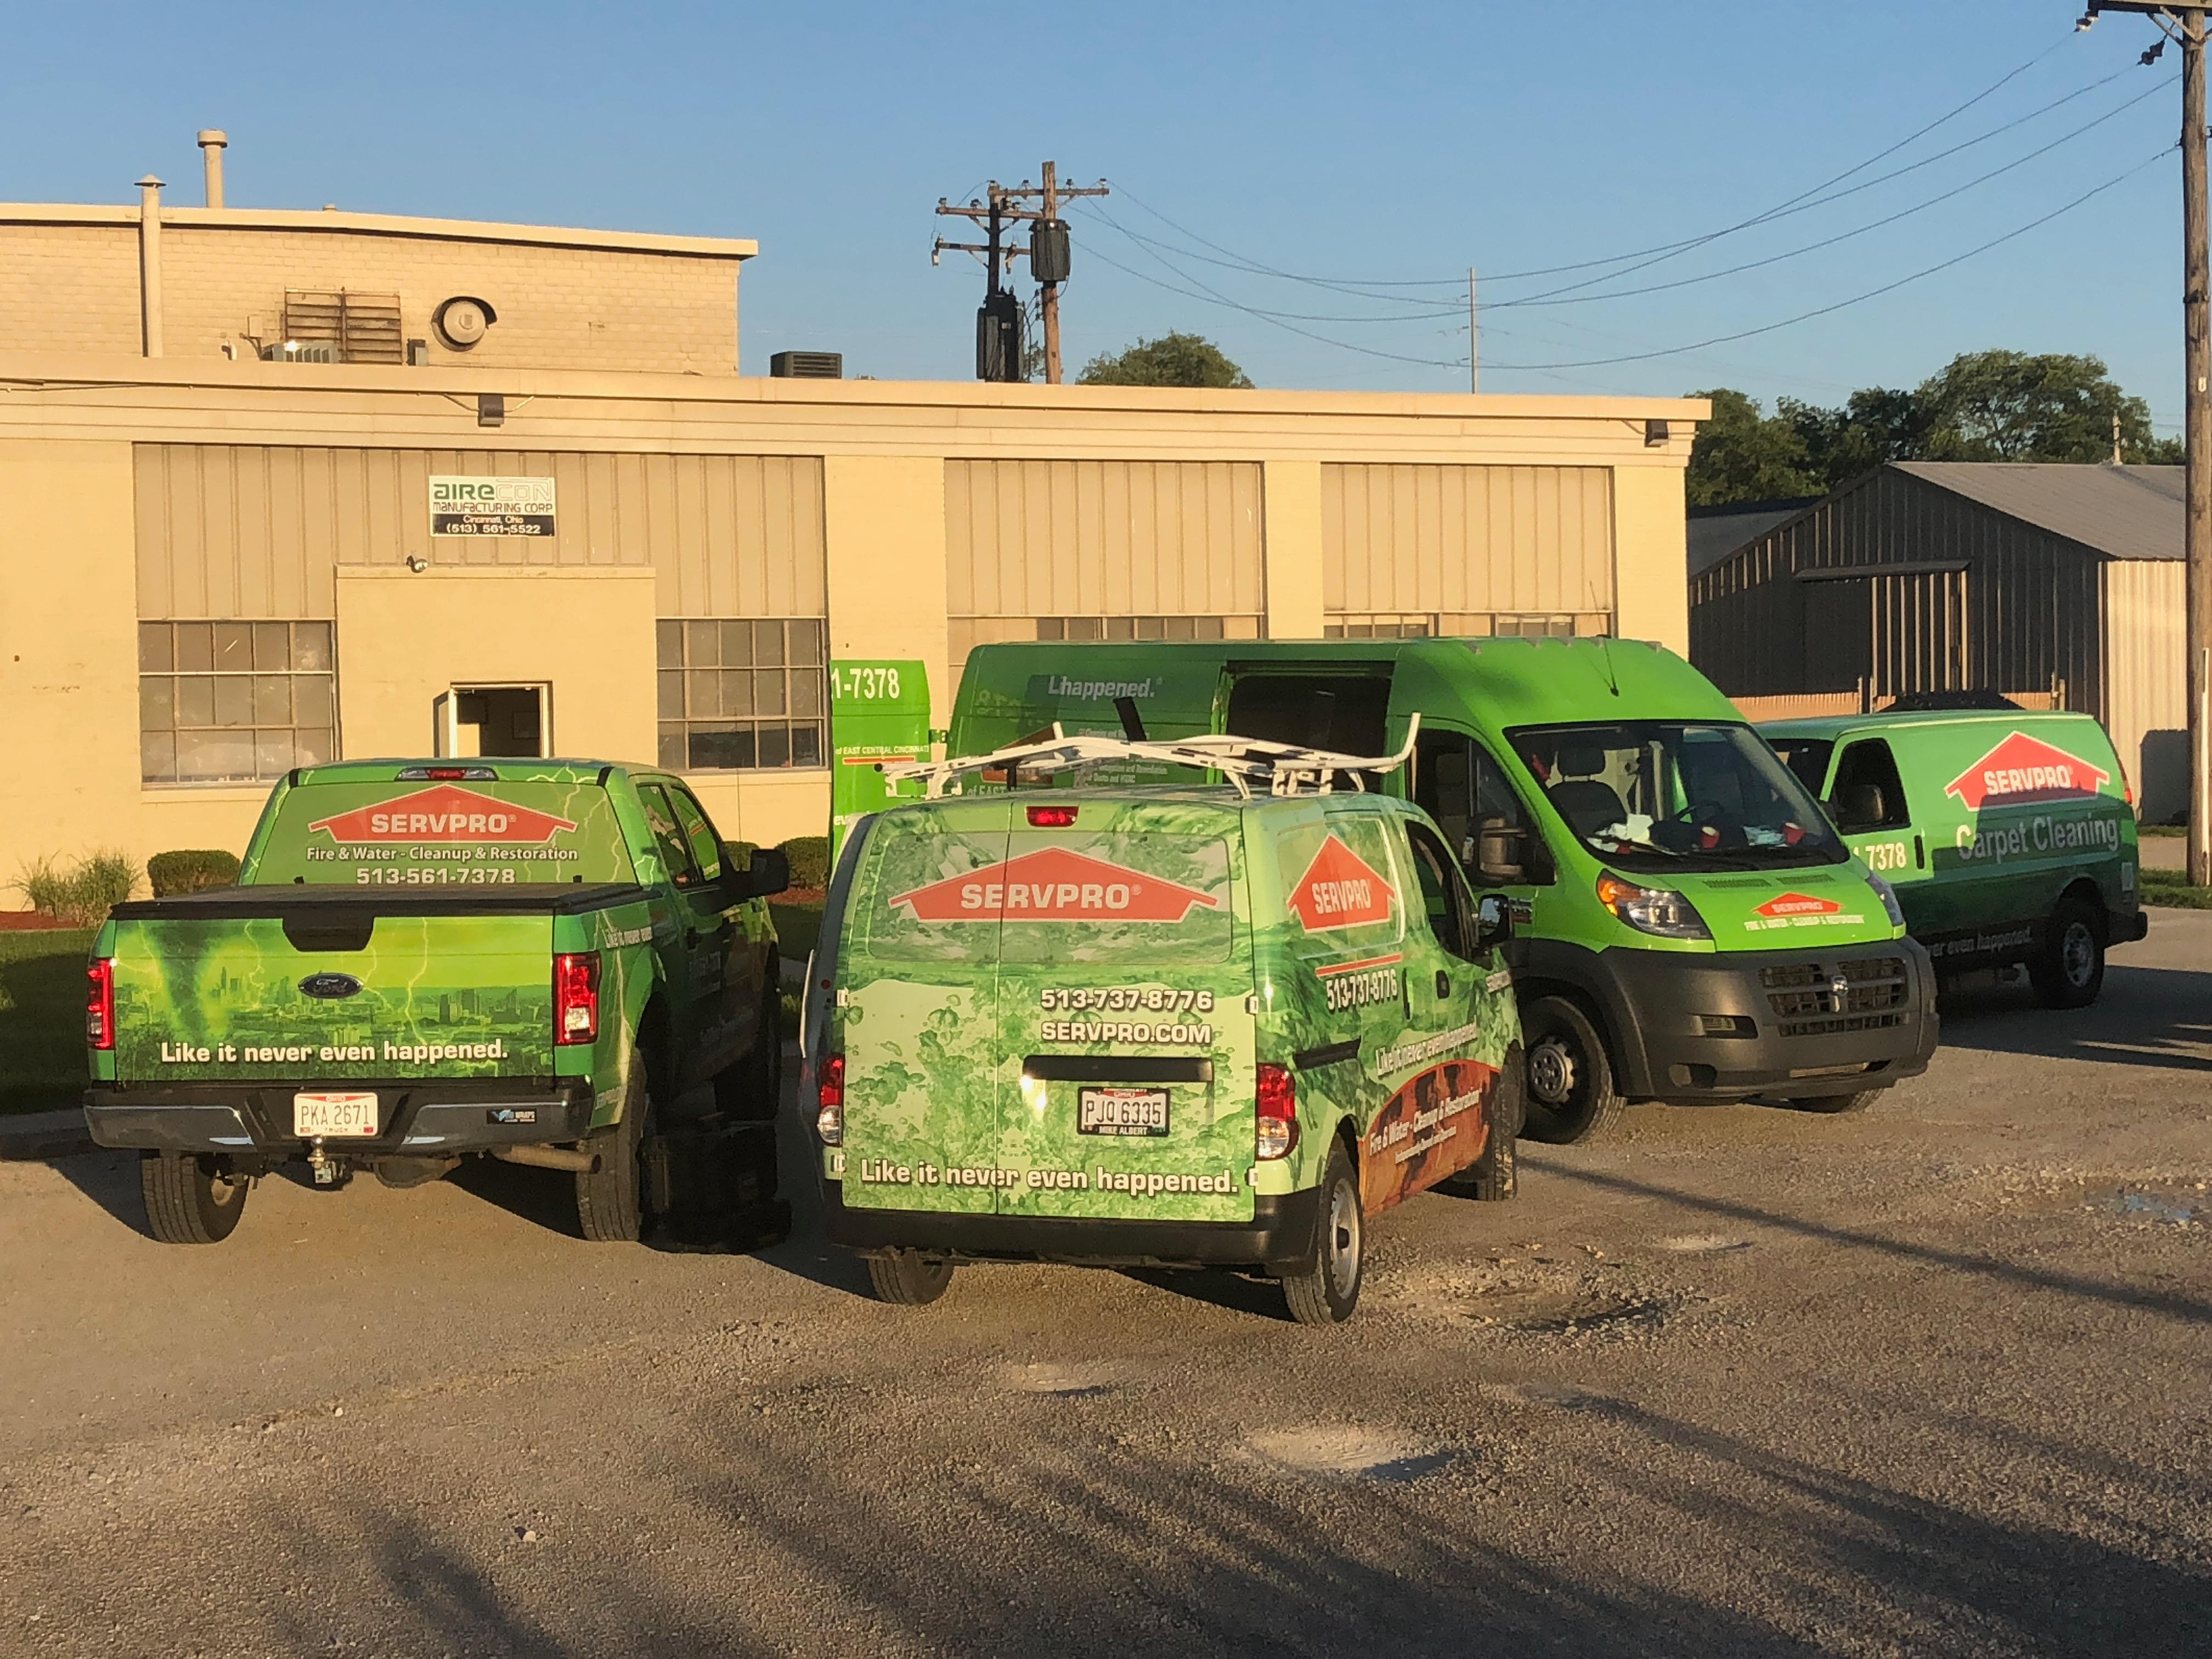 SERVPRO of East Central Cincinnati image 2